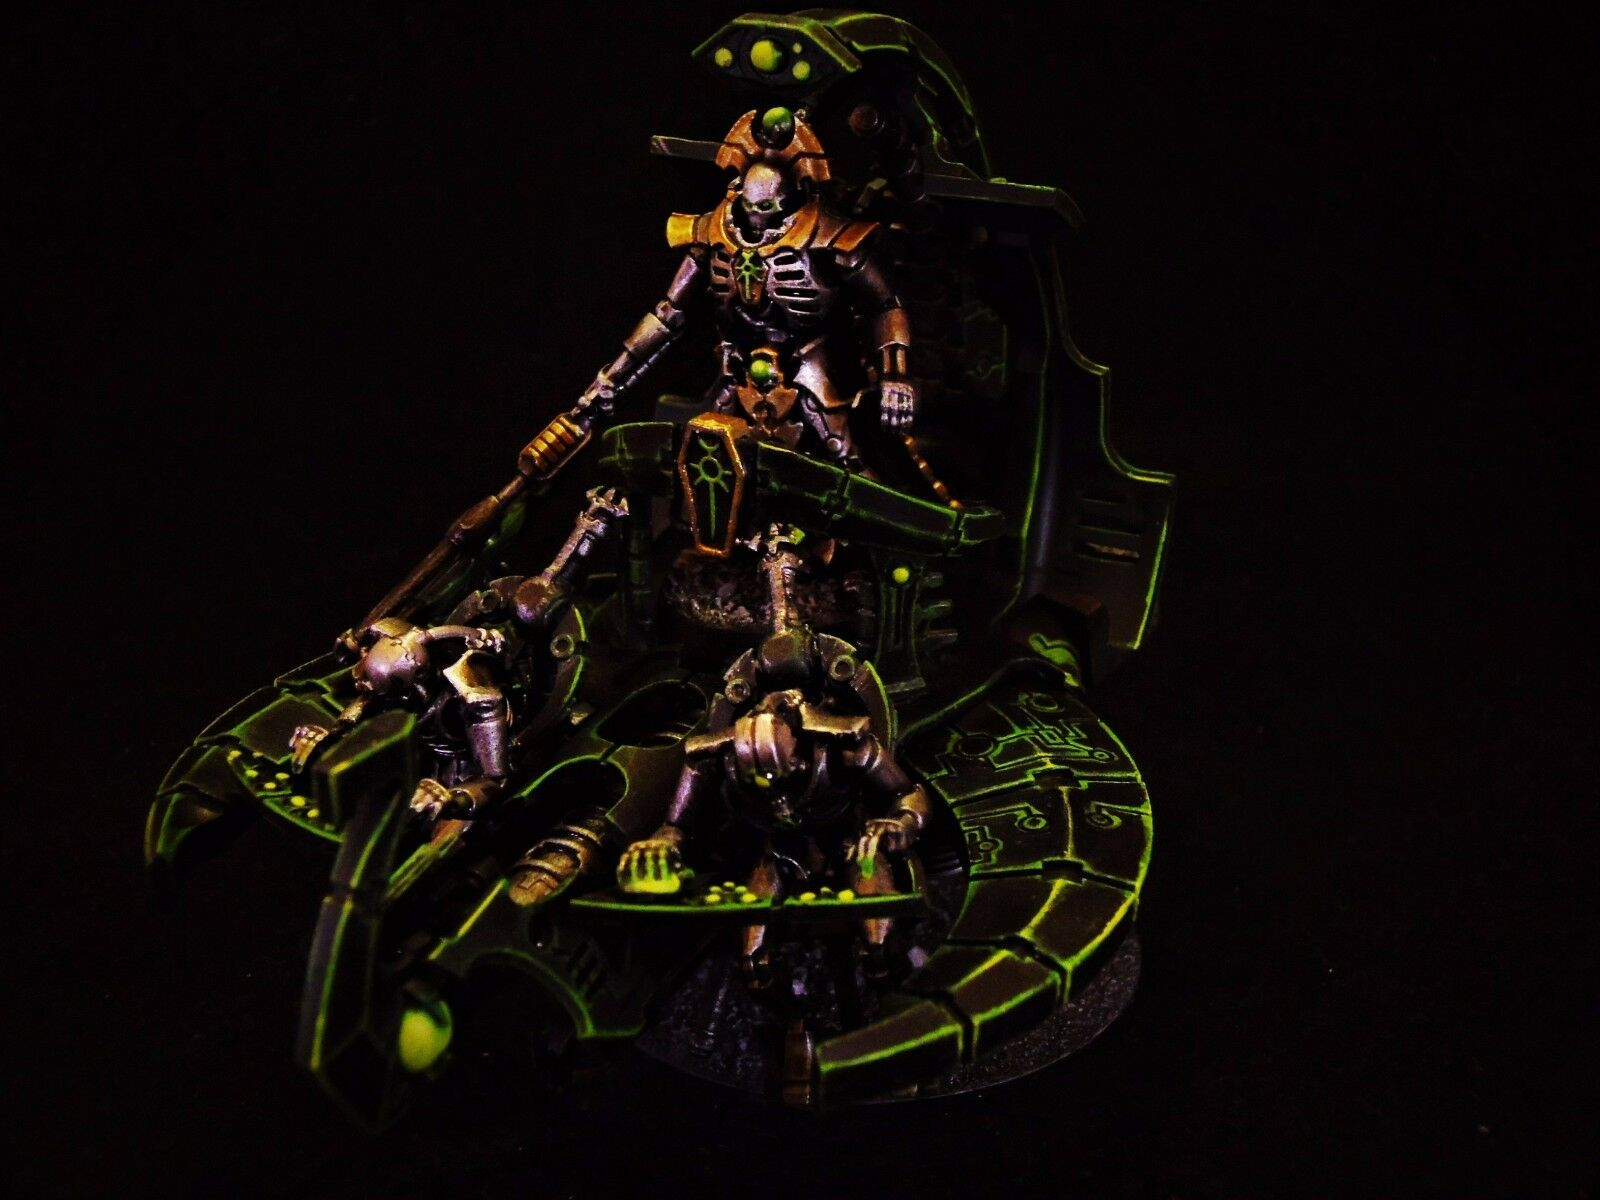 Warhammer 40,000 Necron Catacomb Command Command Command Barge Pro Painted cd8b68